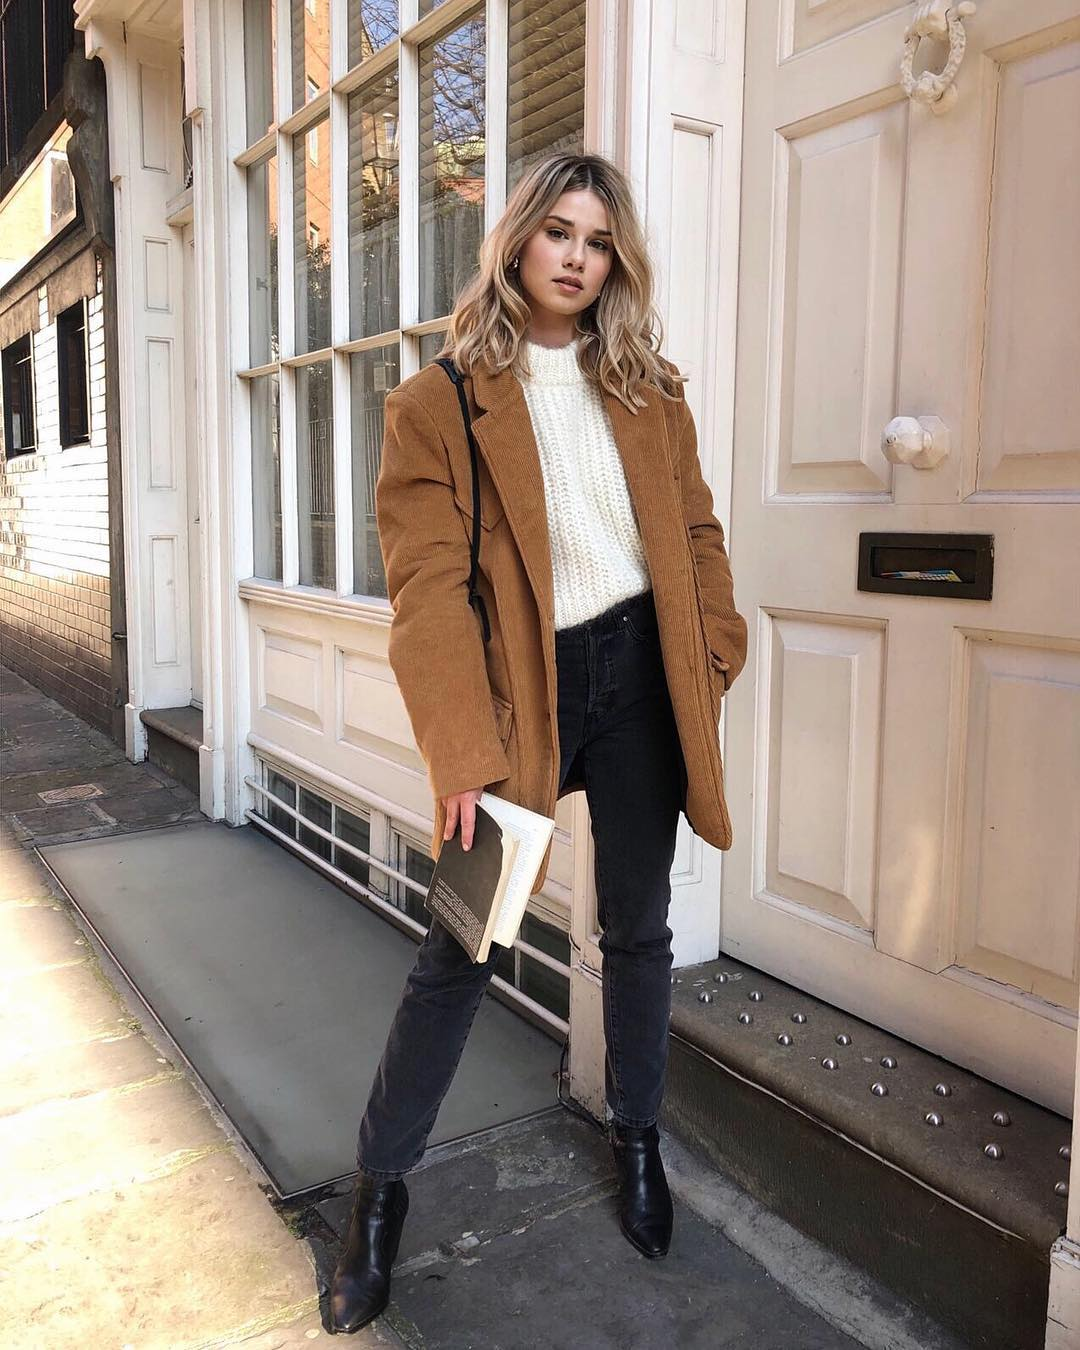 A Stylish Everyday Winter Outfit Idea to Try Now — Iga Wysocka in a camel jacket, white sweater, black jeans, and boots